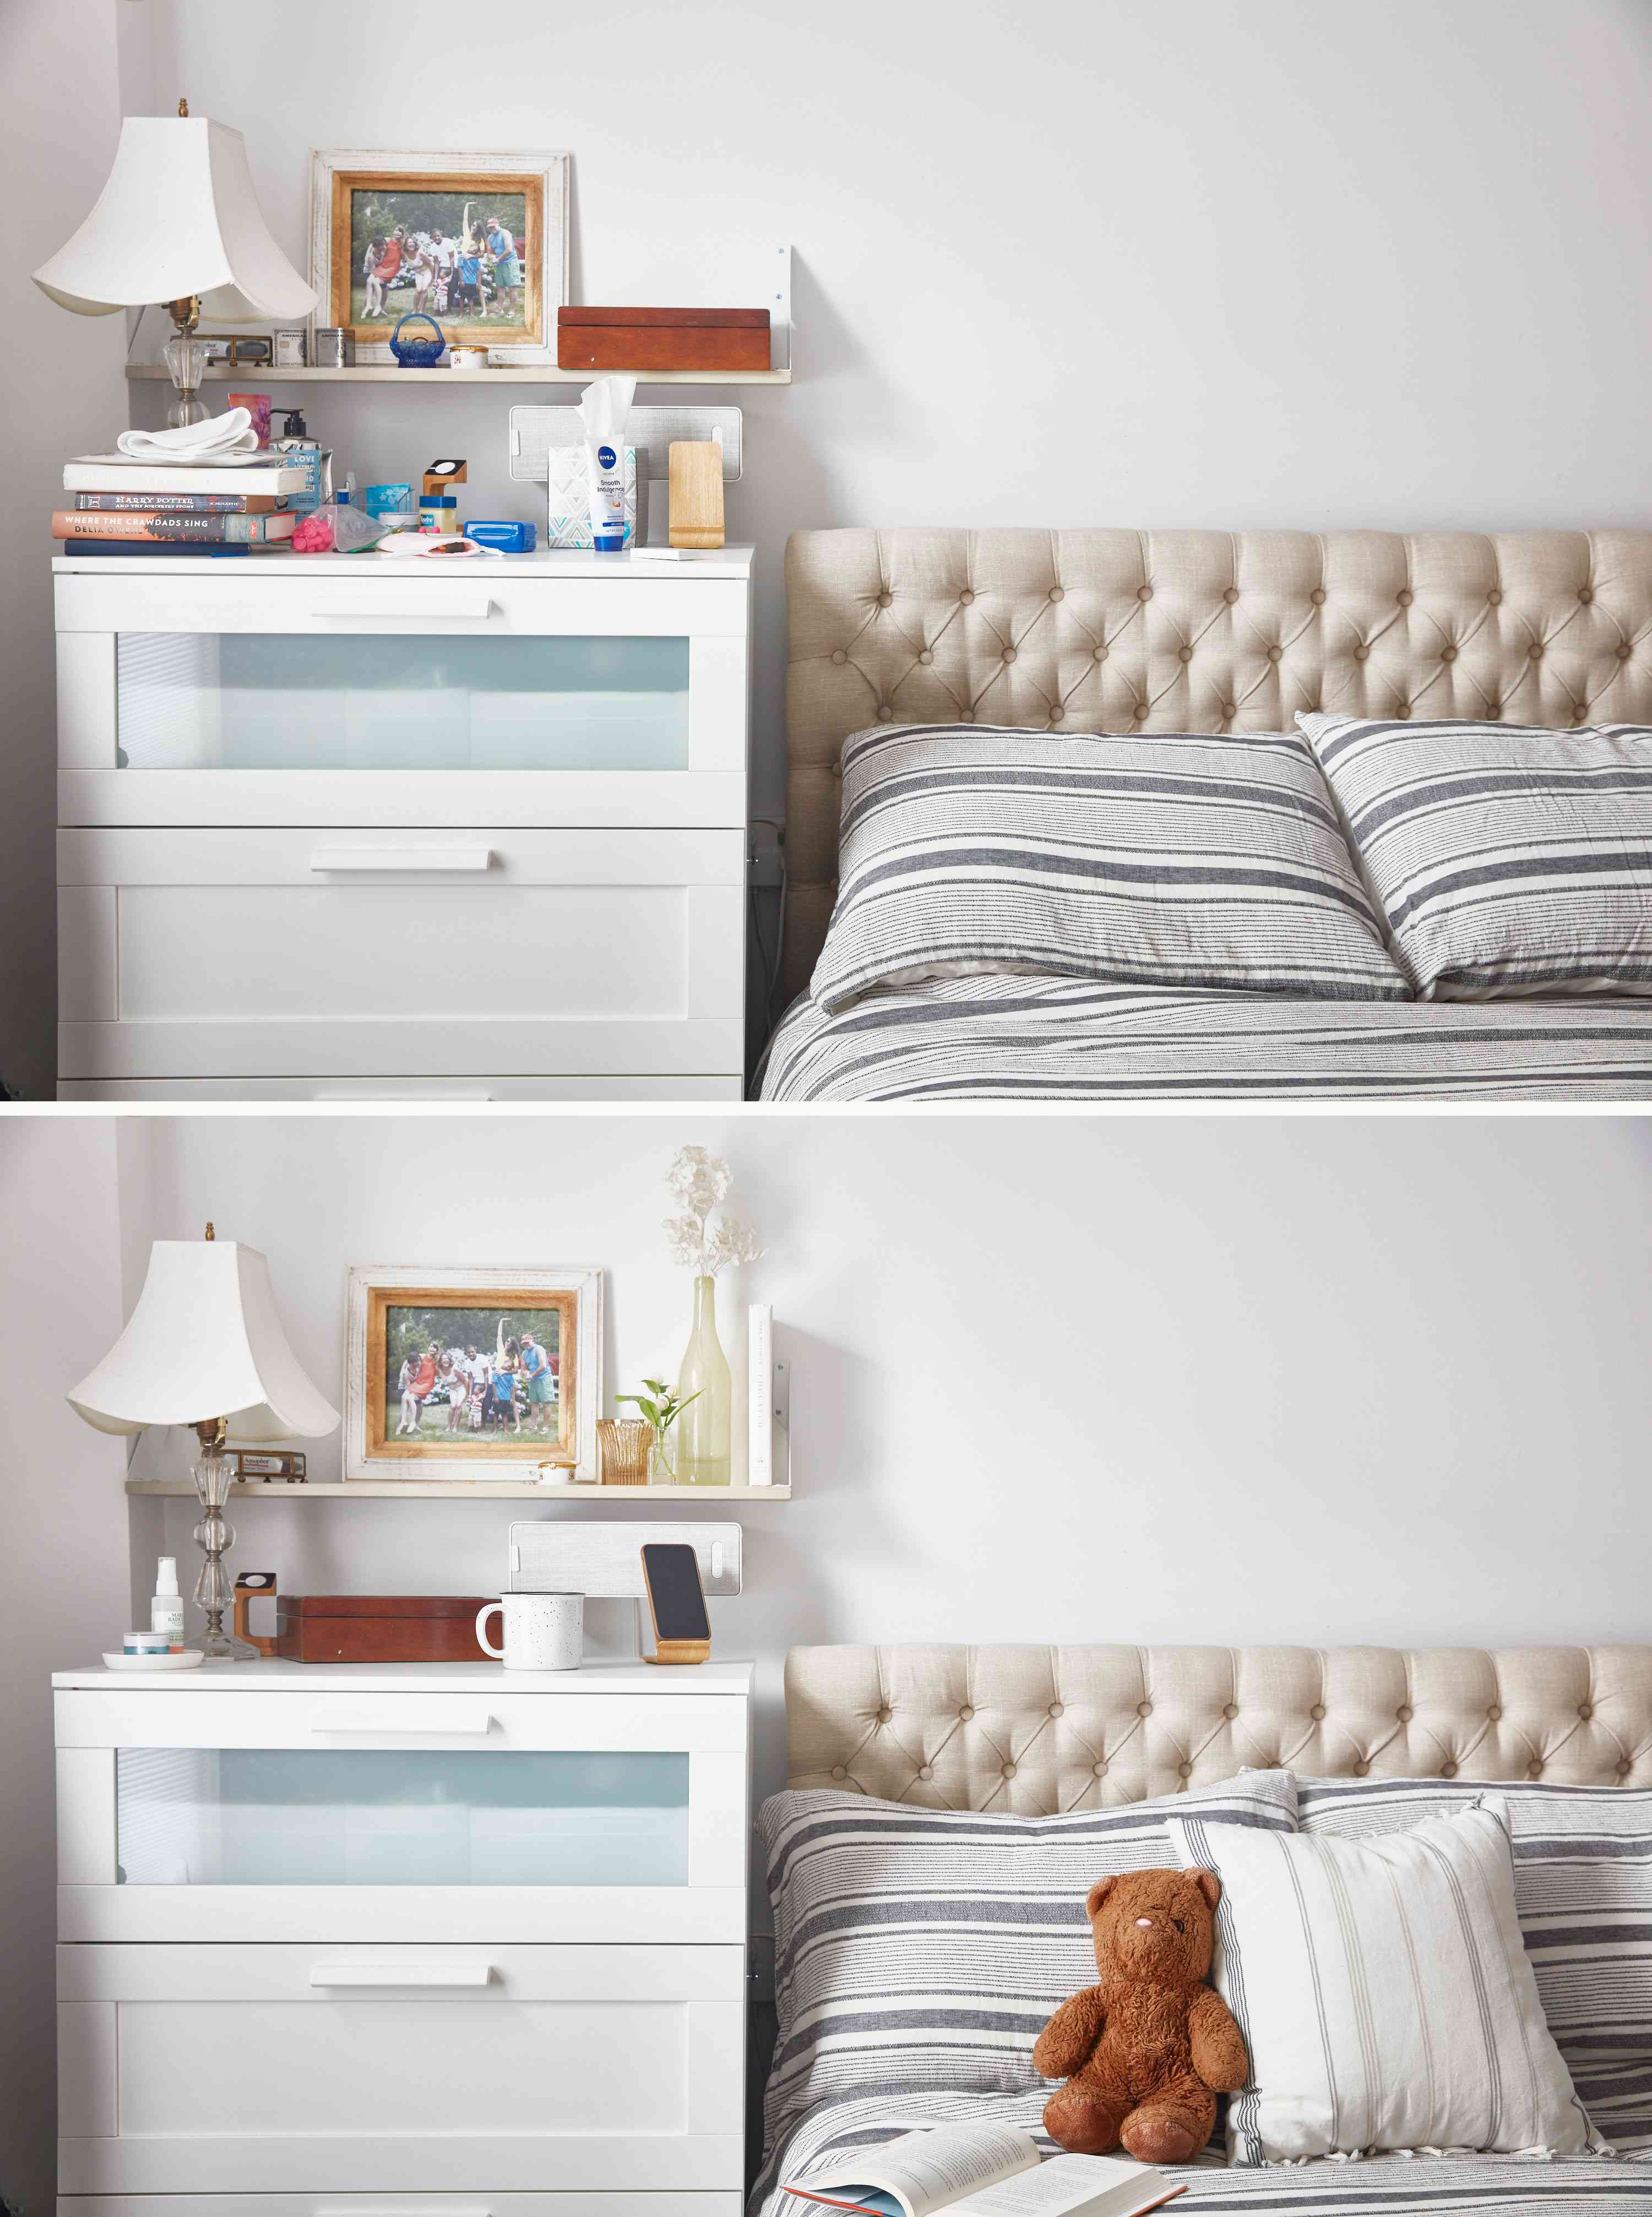 Before and after bedroom corner